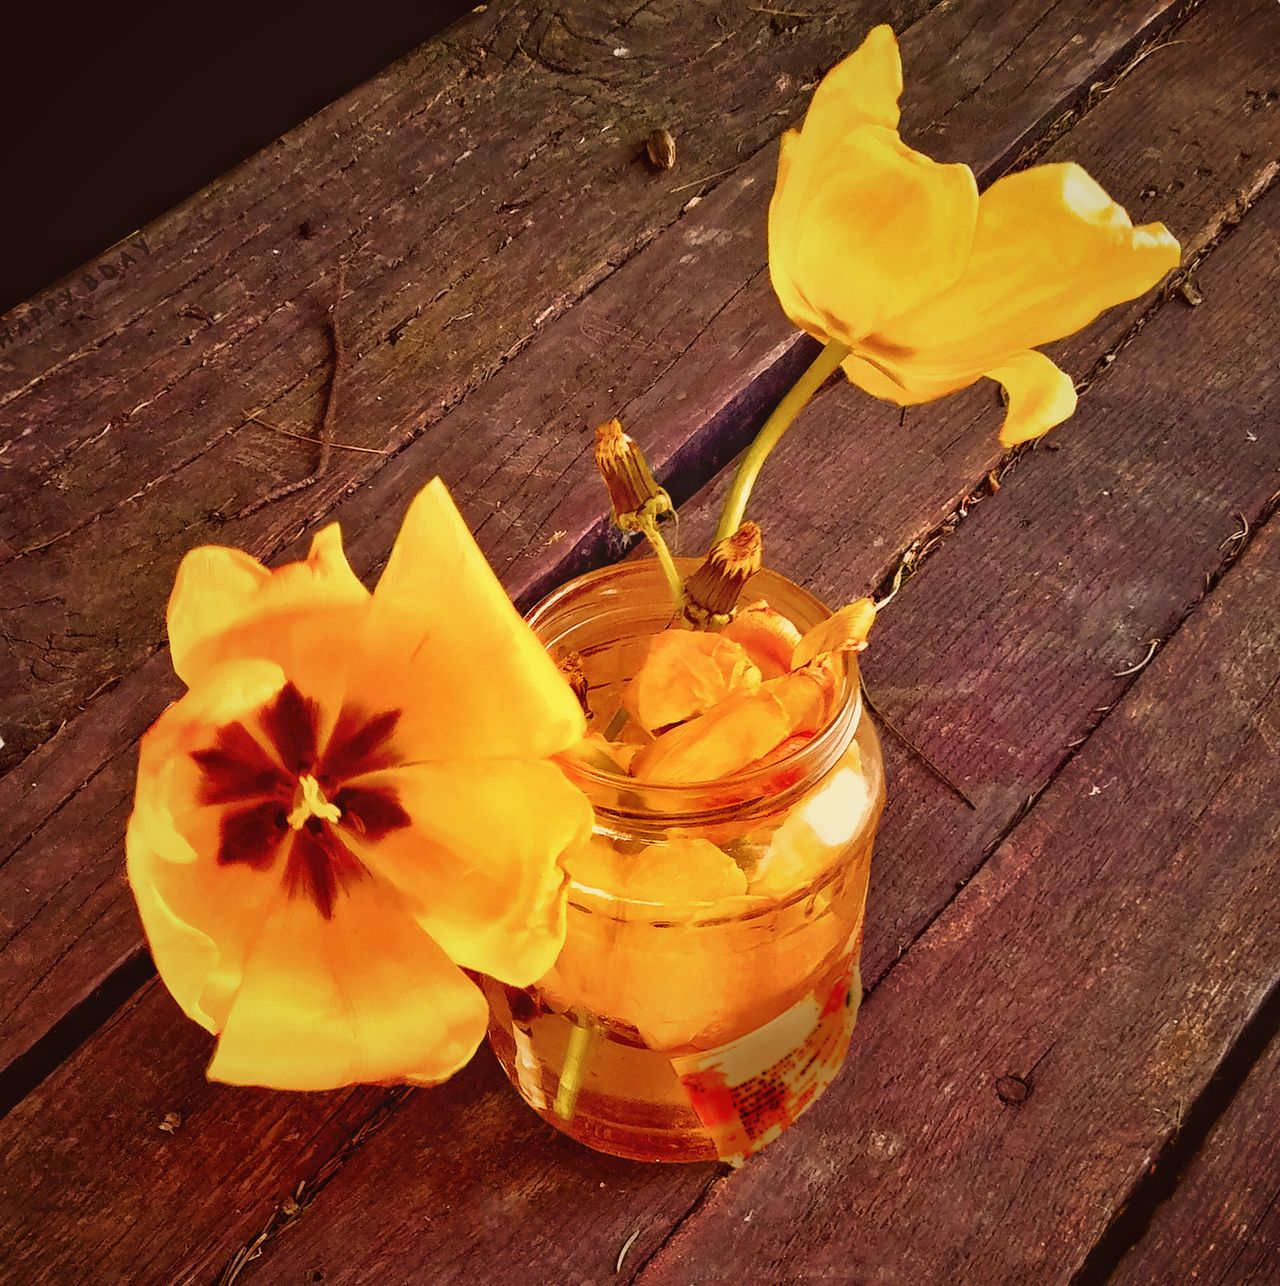 Gift for passerby Tulips Yellow Golden Jar Glass Table Wooden Old Spring Flowers Two Tulips Gift